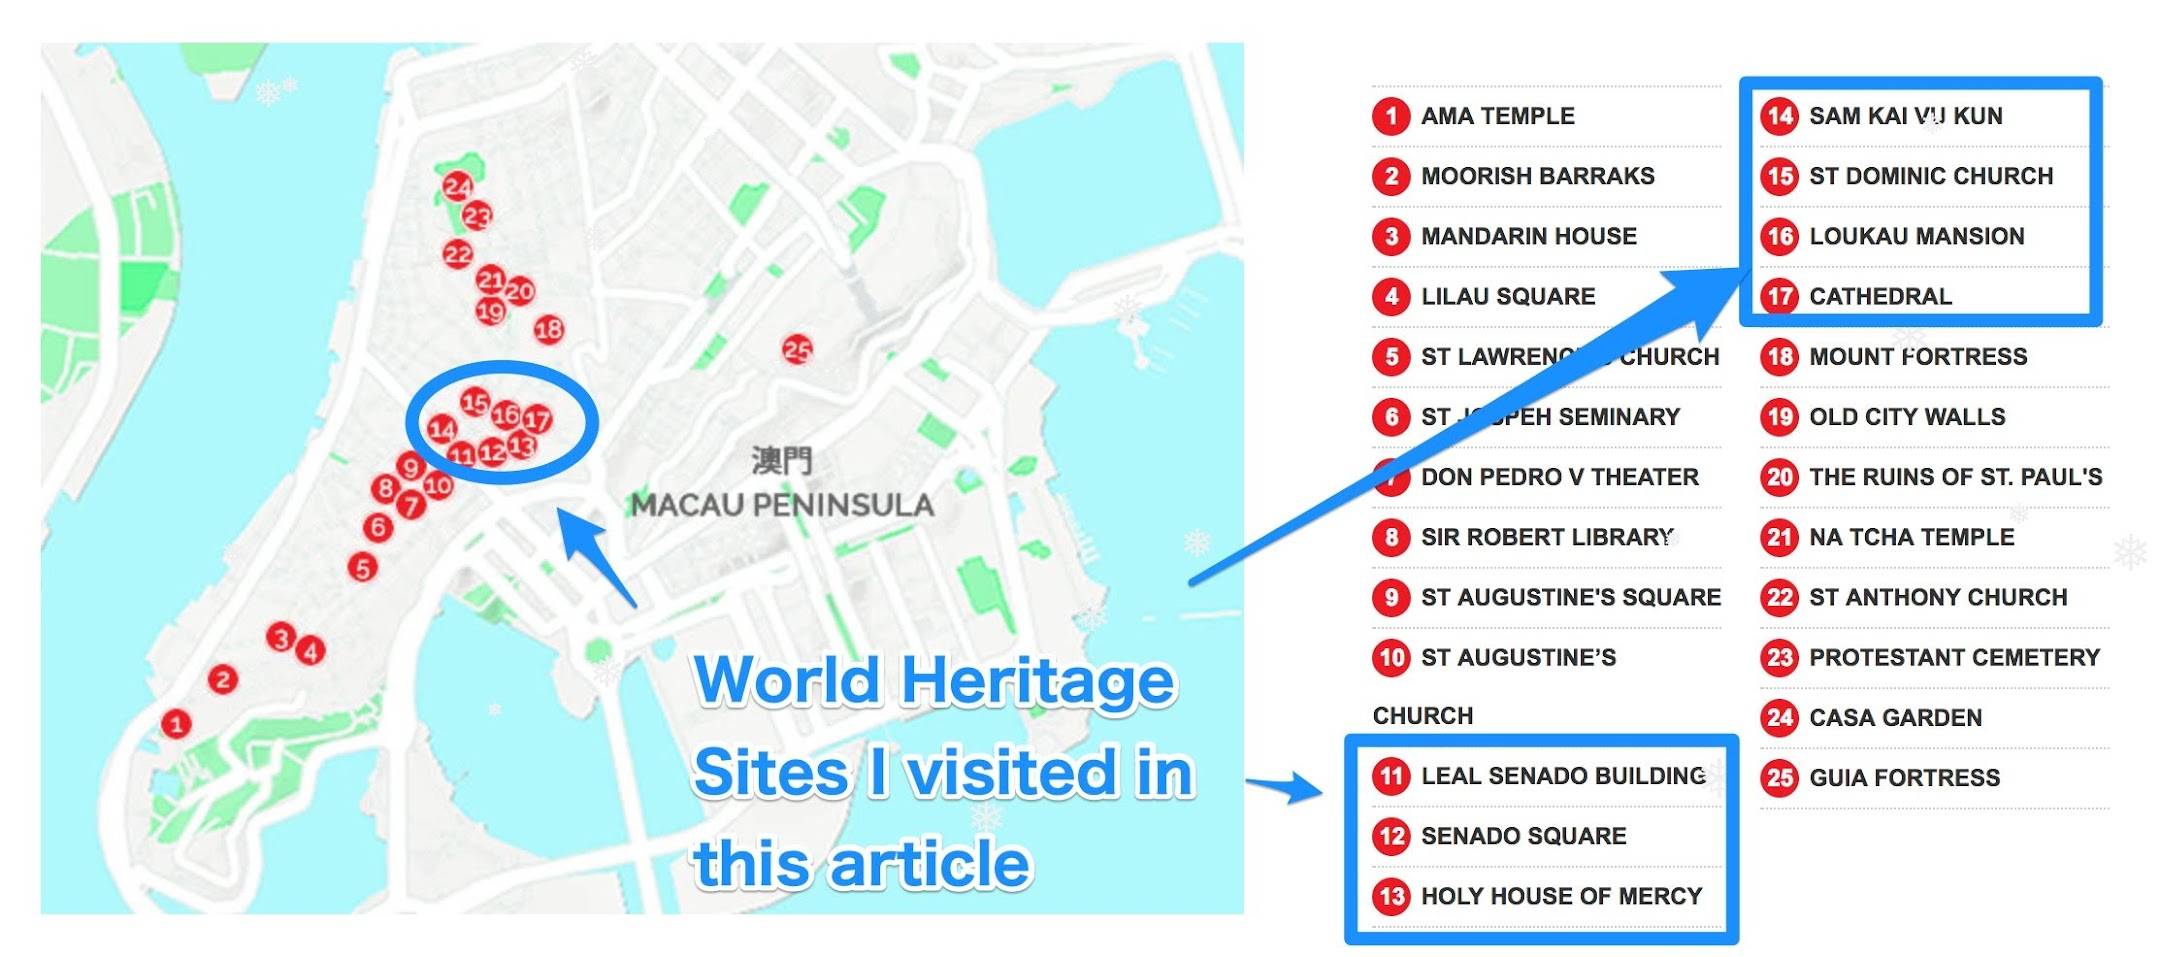 Macau World Heritage map